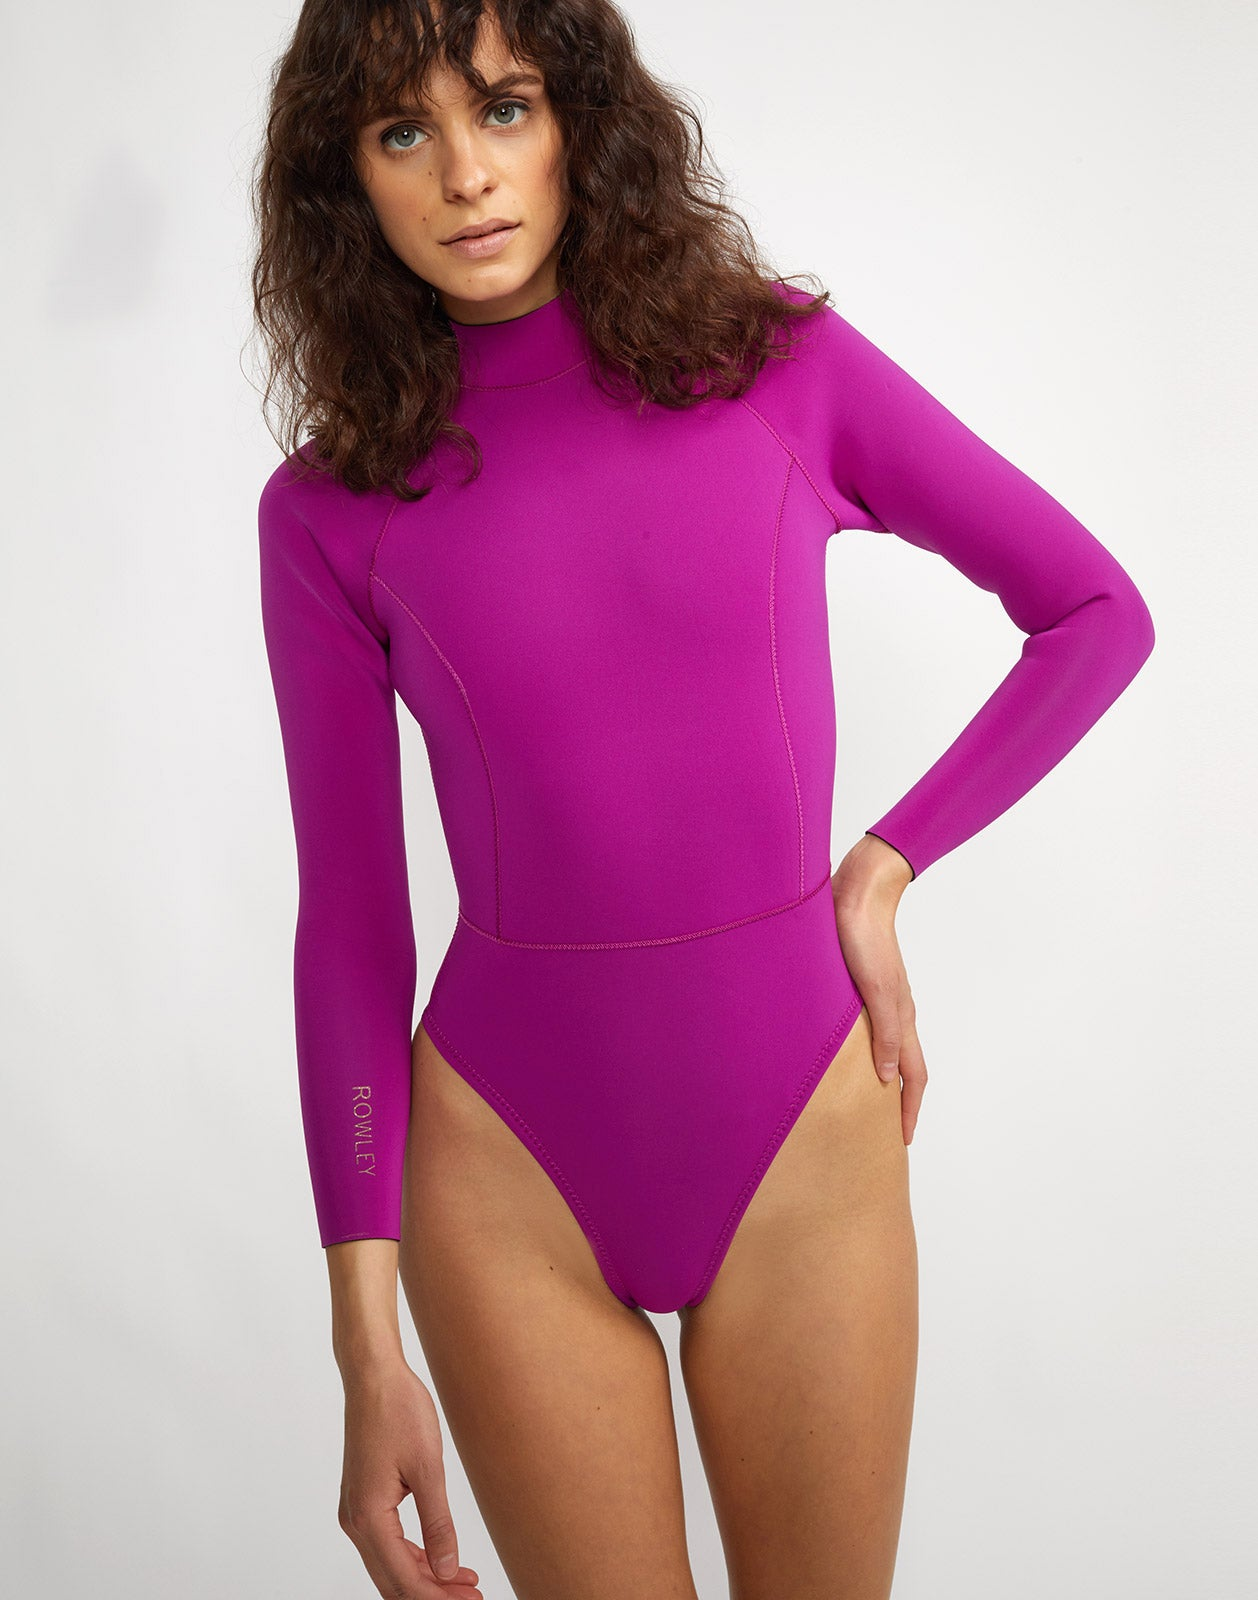 Front view of the Victoria high cut wetsuit.